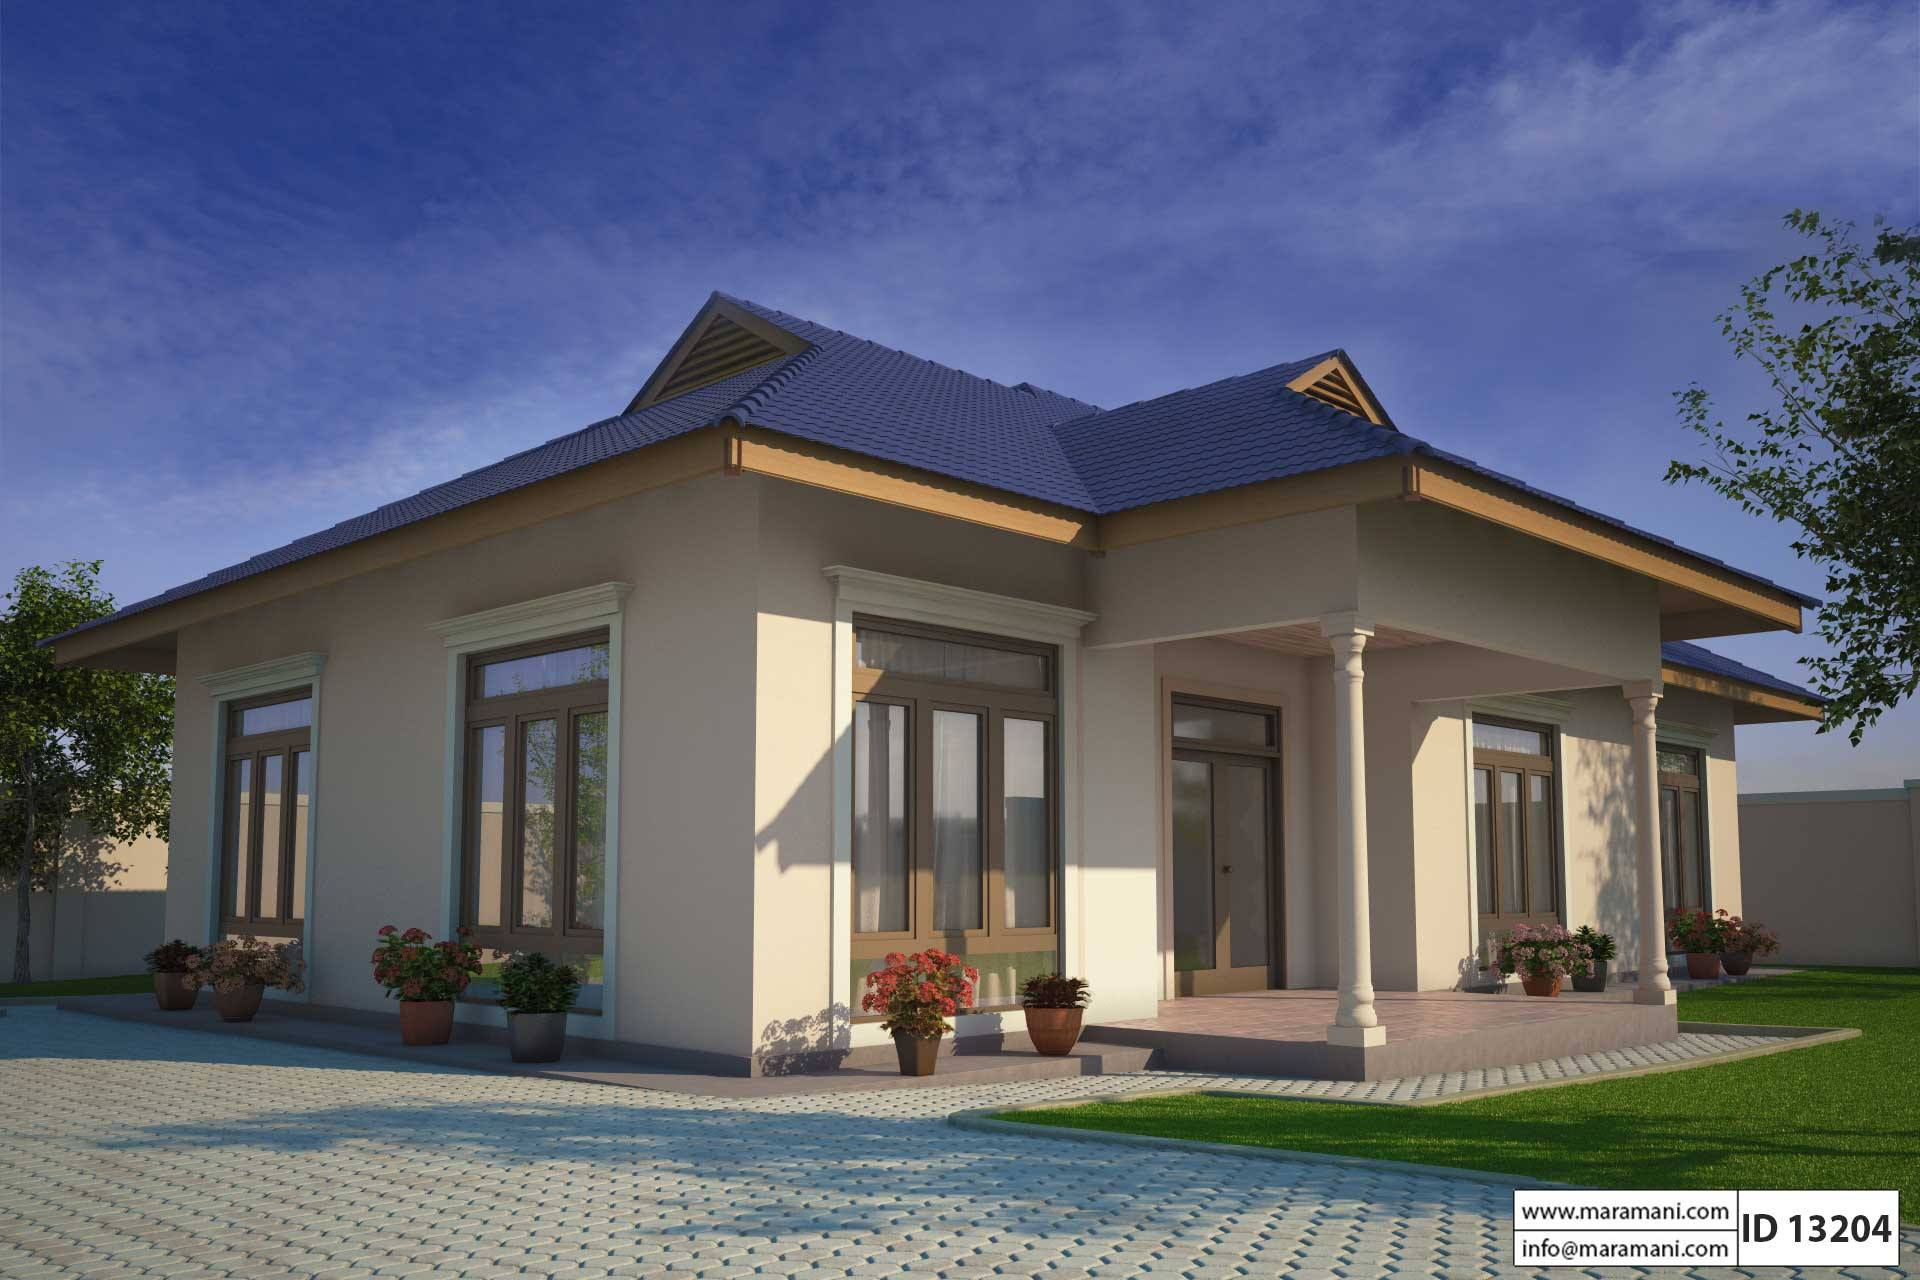 small three bedroom house plan id 13204 floor plans by maramani - Three Bedroom House